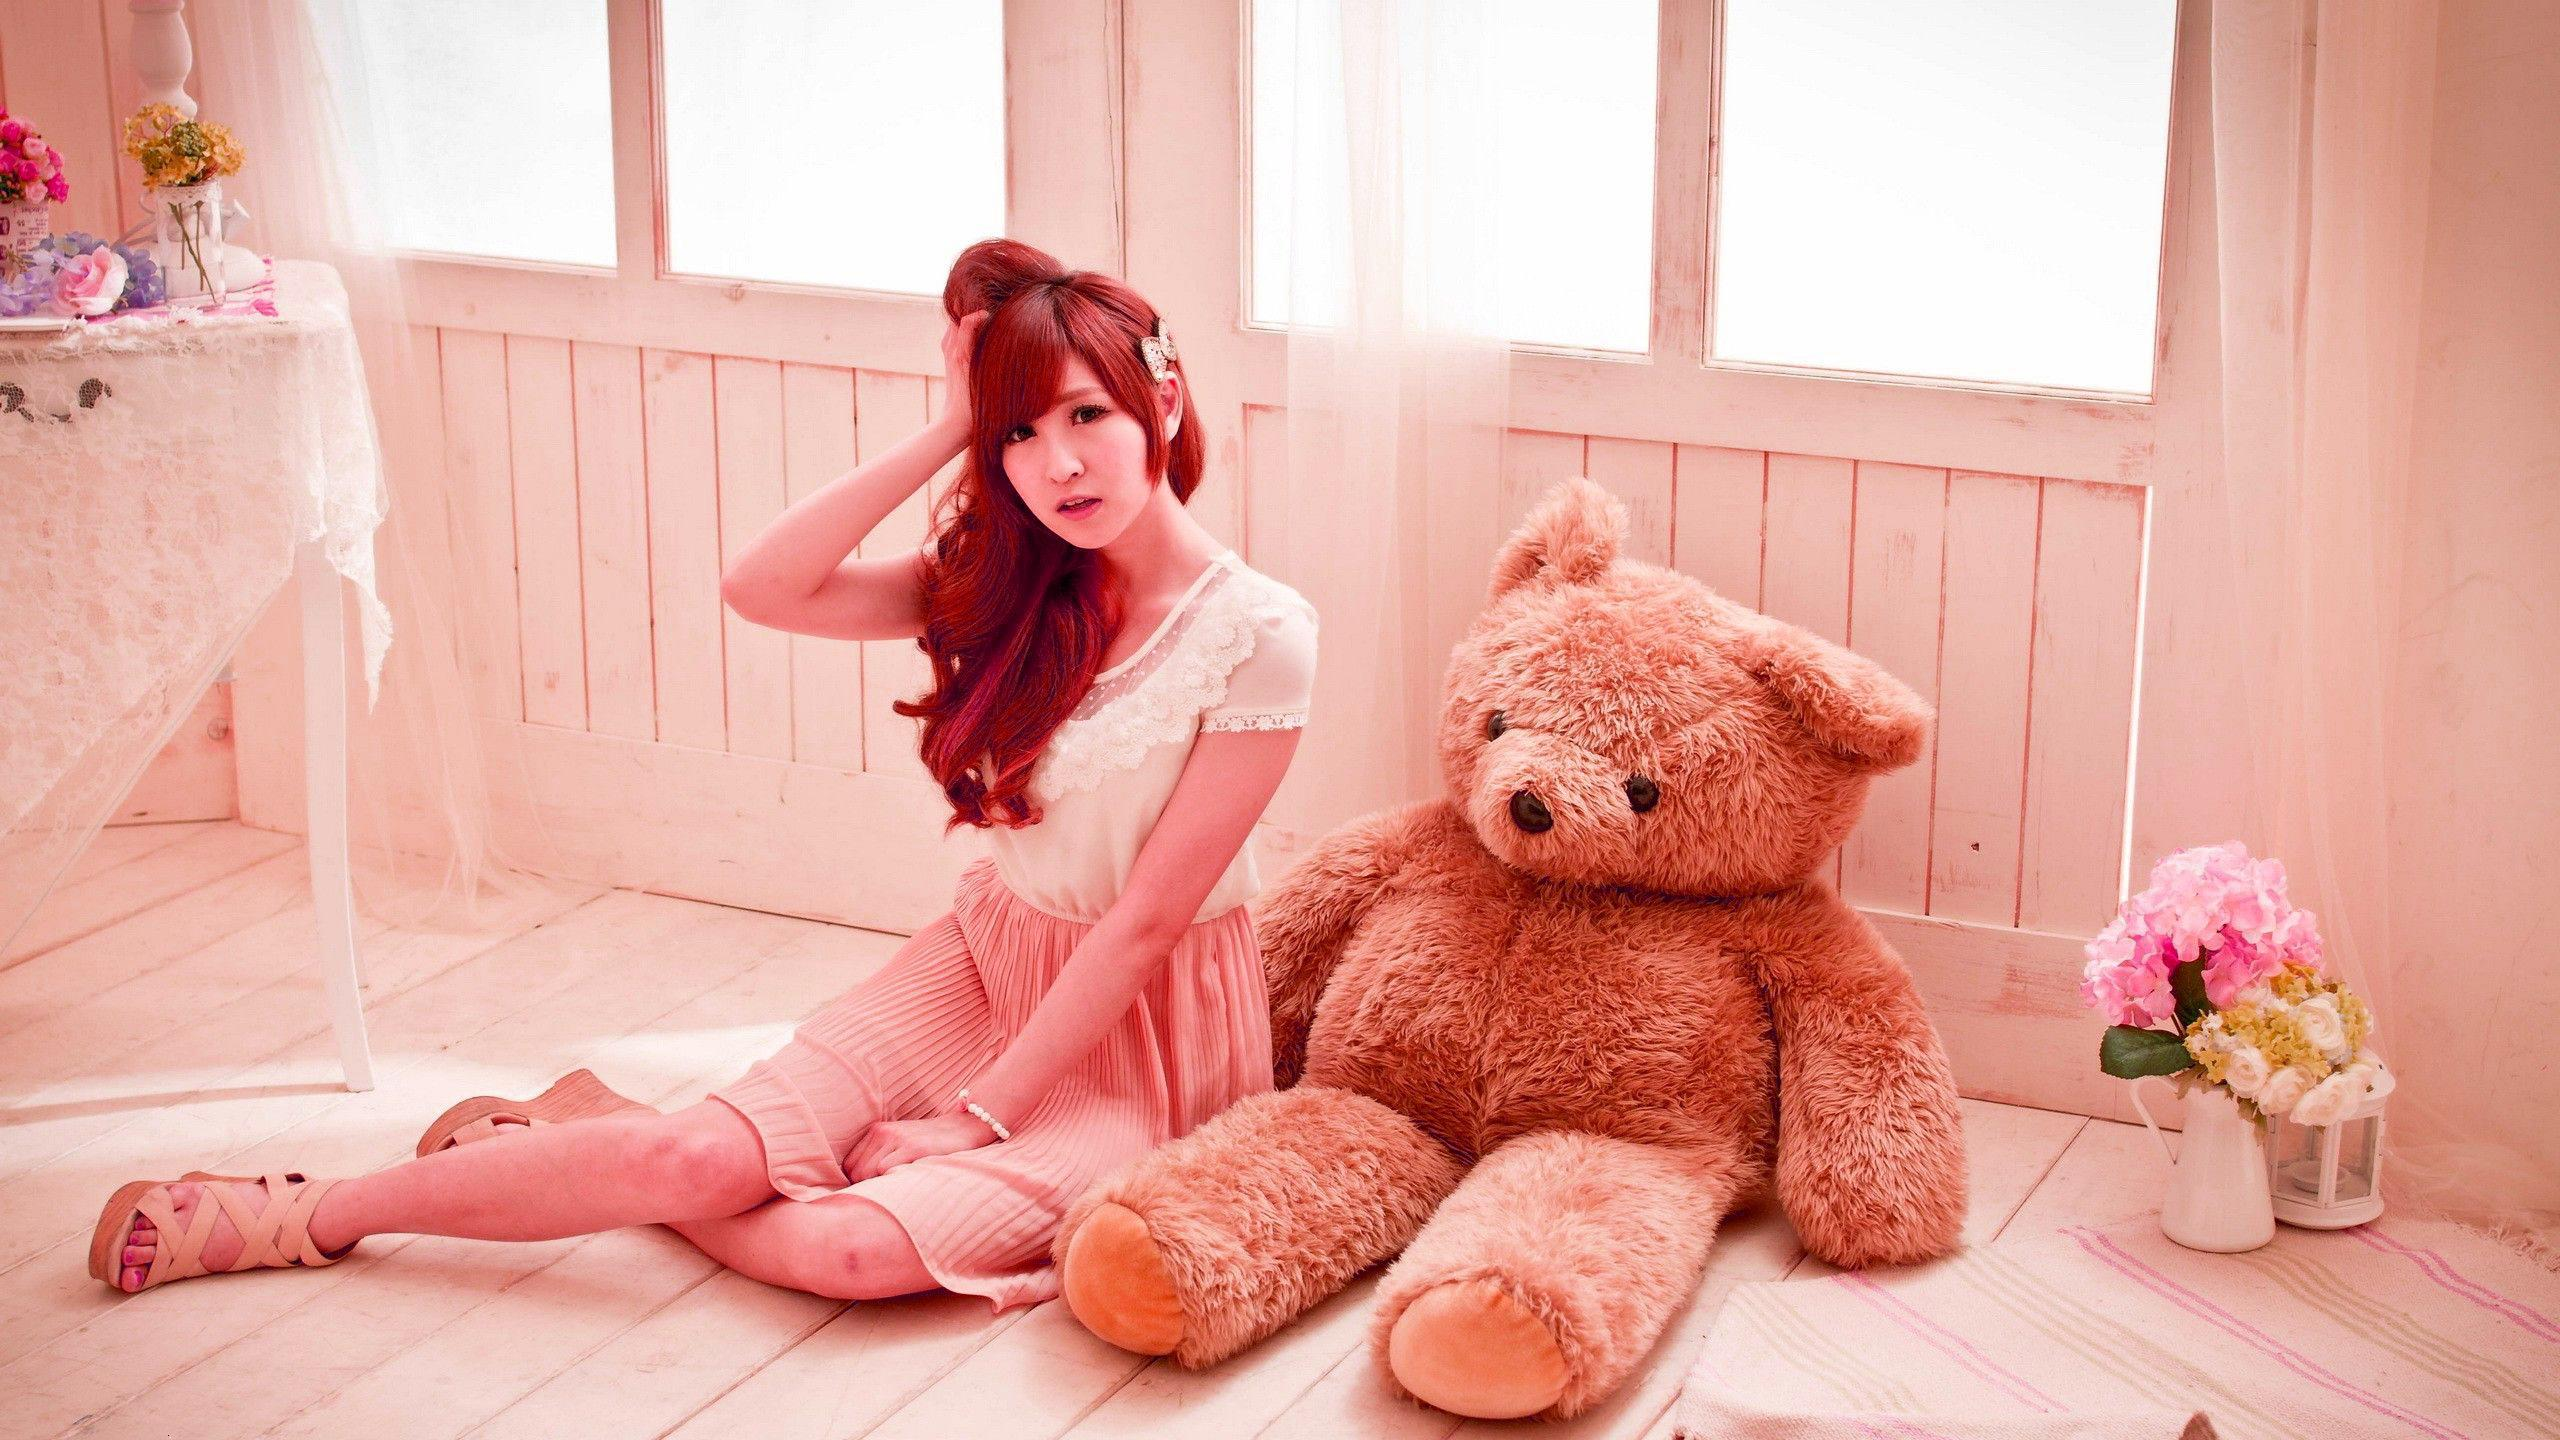 Cute Baby Boy Full Hd Wallpaper Download Innocent Girl And The Teddy Innocent Girl